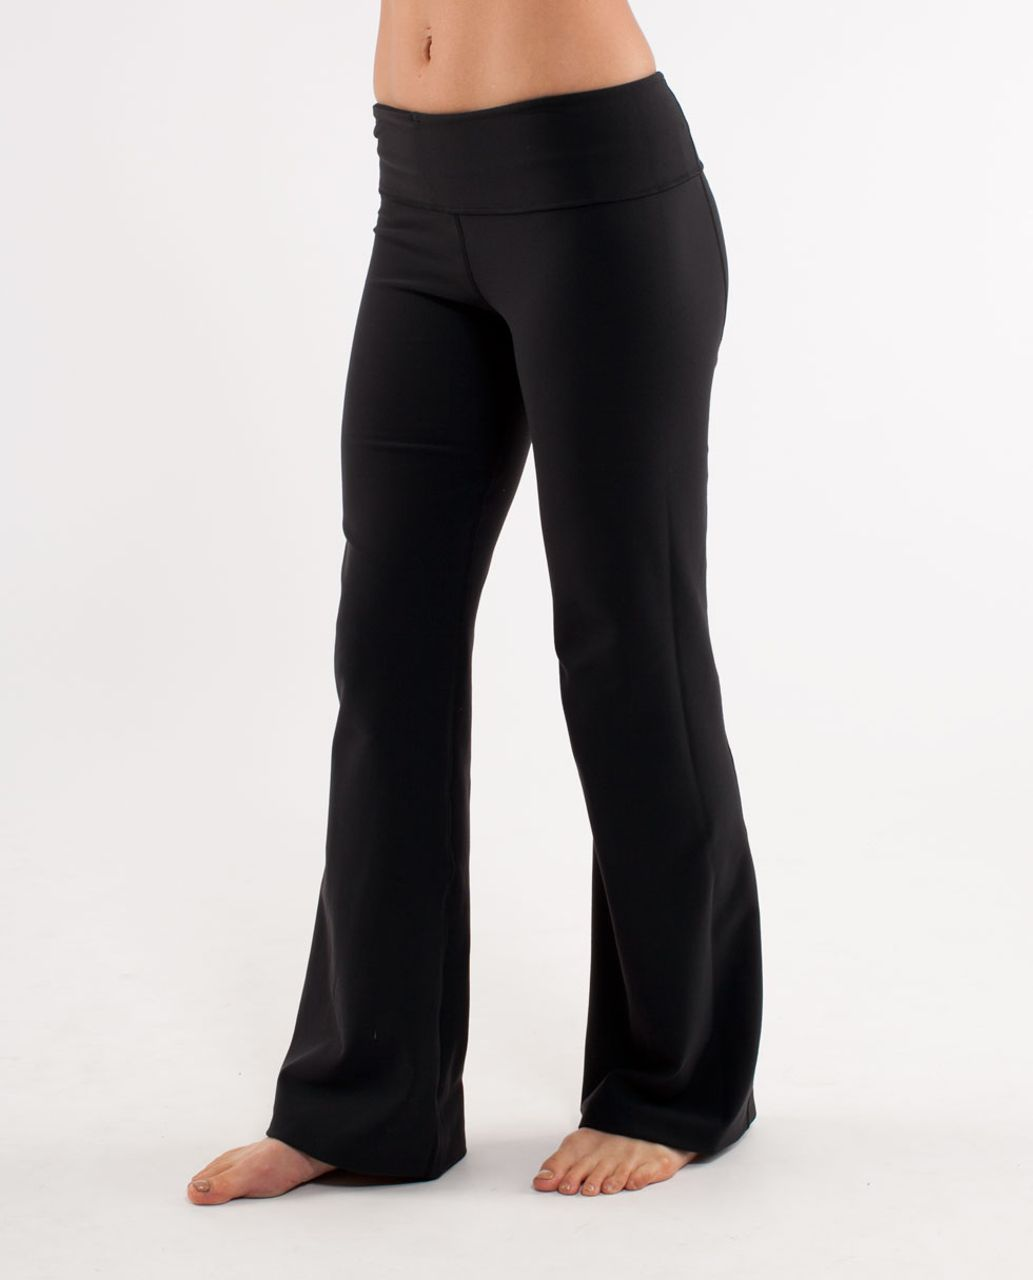 Lululemon Groove Pant (Regular) - Black /  Winter Quilt Ii